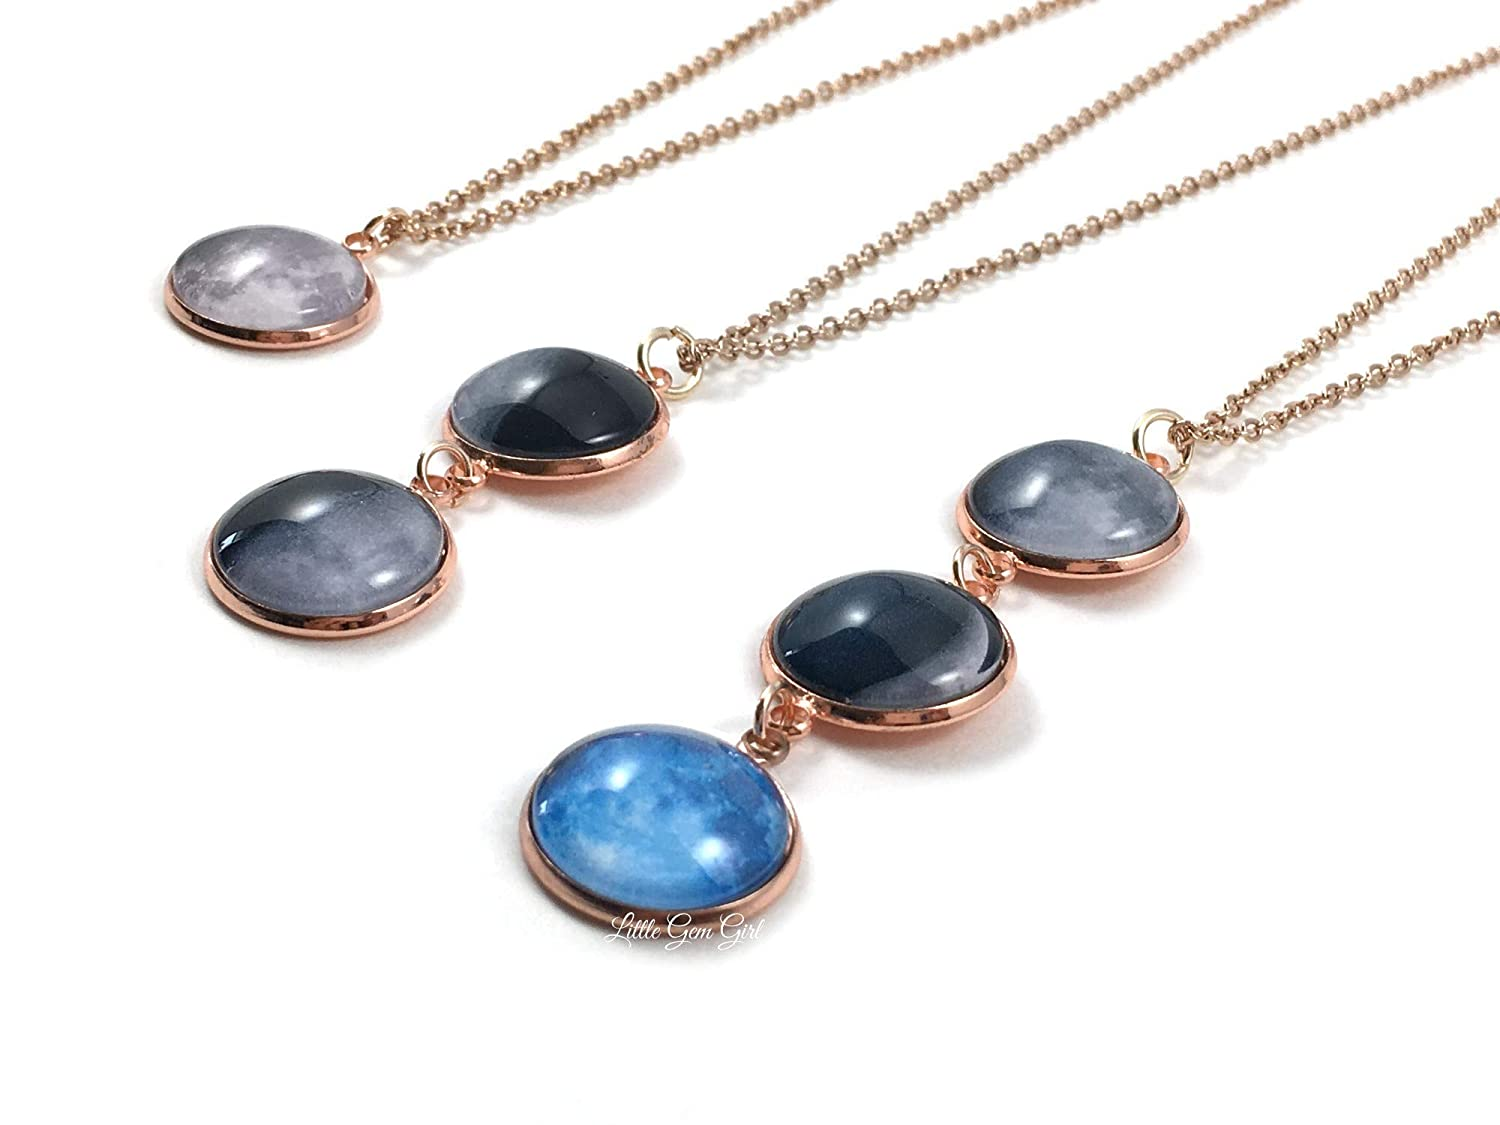 Moon Pendant Moon Hammered Necklace Charms 3 Holes 2 Pcs RoseGold Plated Moon Charms Necklace Pendant 25x6 mm-RSGLD-261